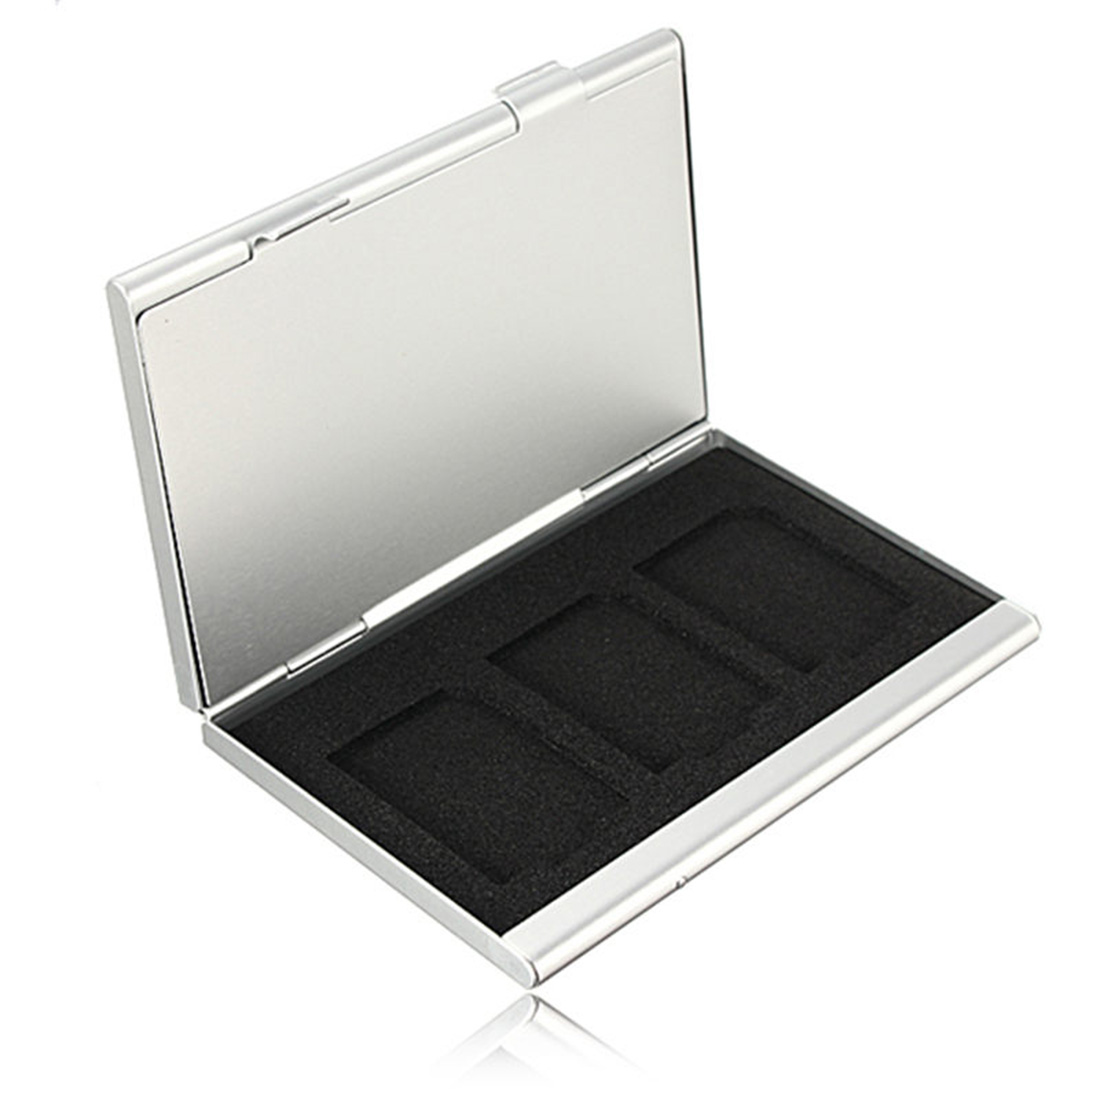 Image 3 - NOYOKERE High Quality 6 Slots Dougle desk Aluminum Storage Box For SD SDHC SDXC MMC Memory Card Case Holder Protector-in Memory Card Cases from Computer & Office